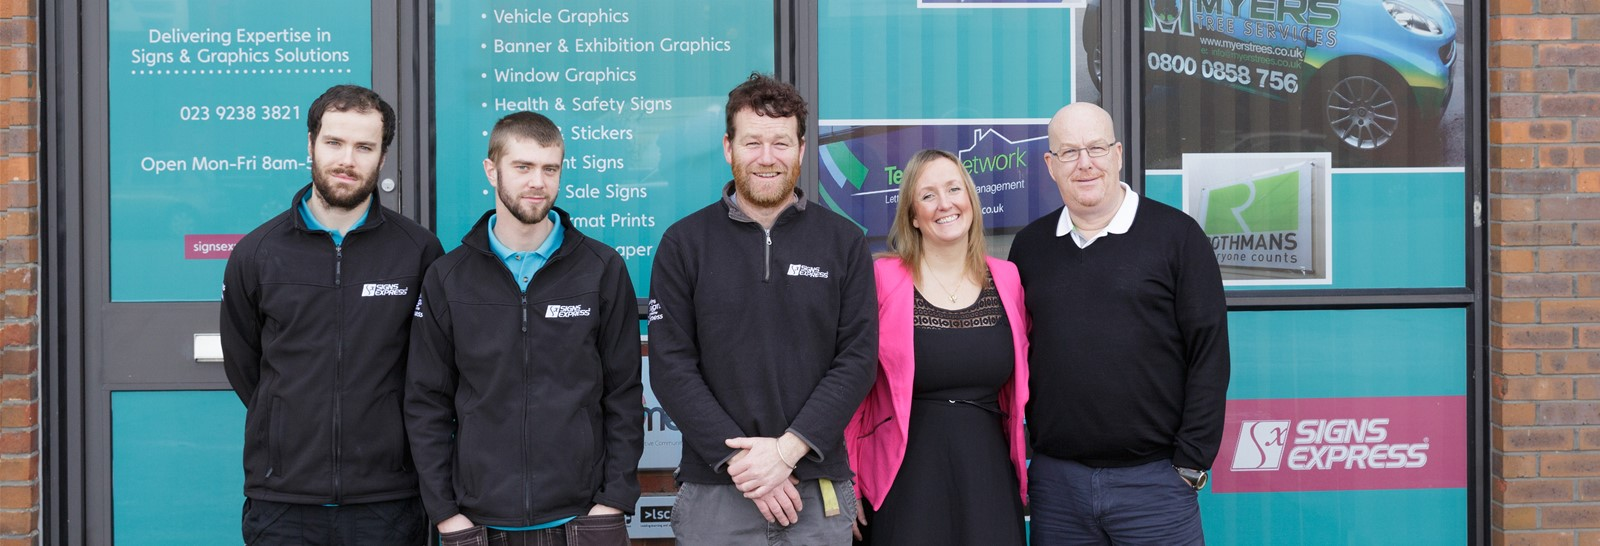 The team at Signs Express (Portsmouth)